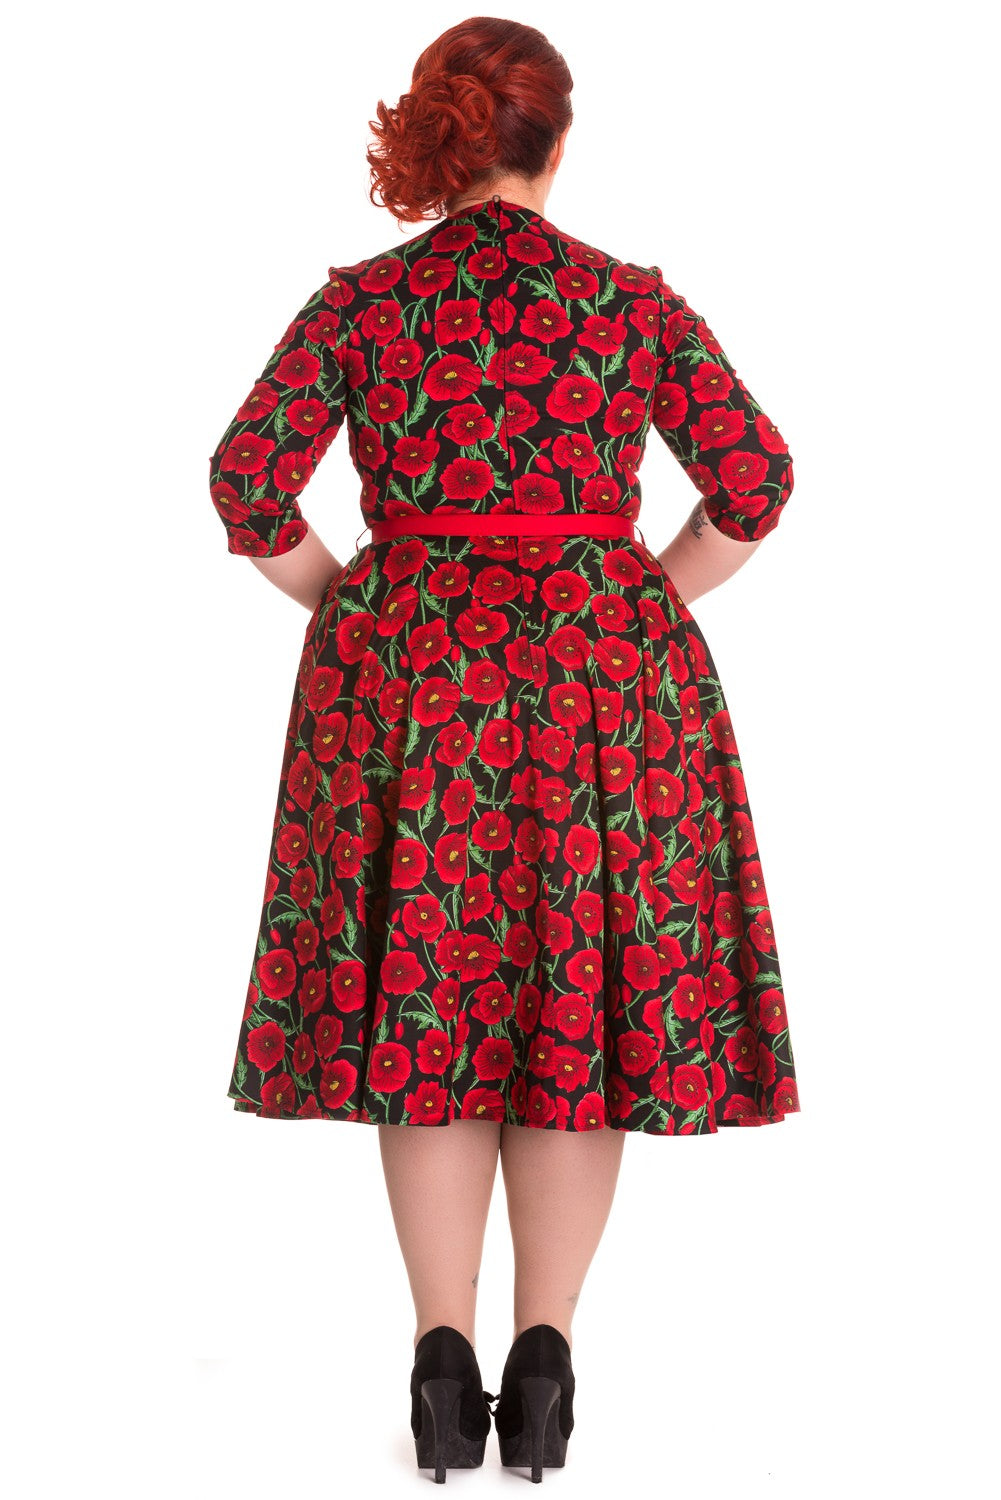 Black Poppy 50s Dress